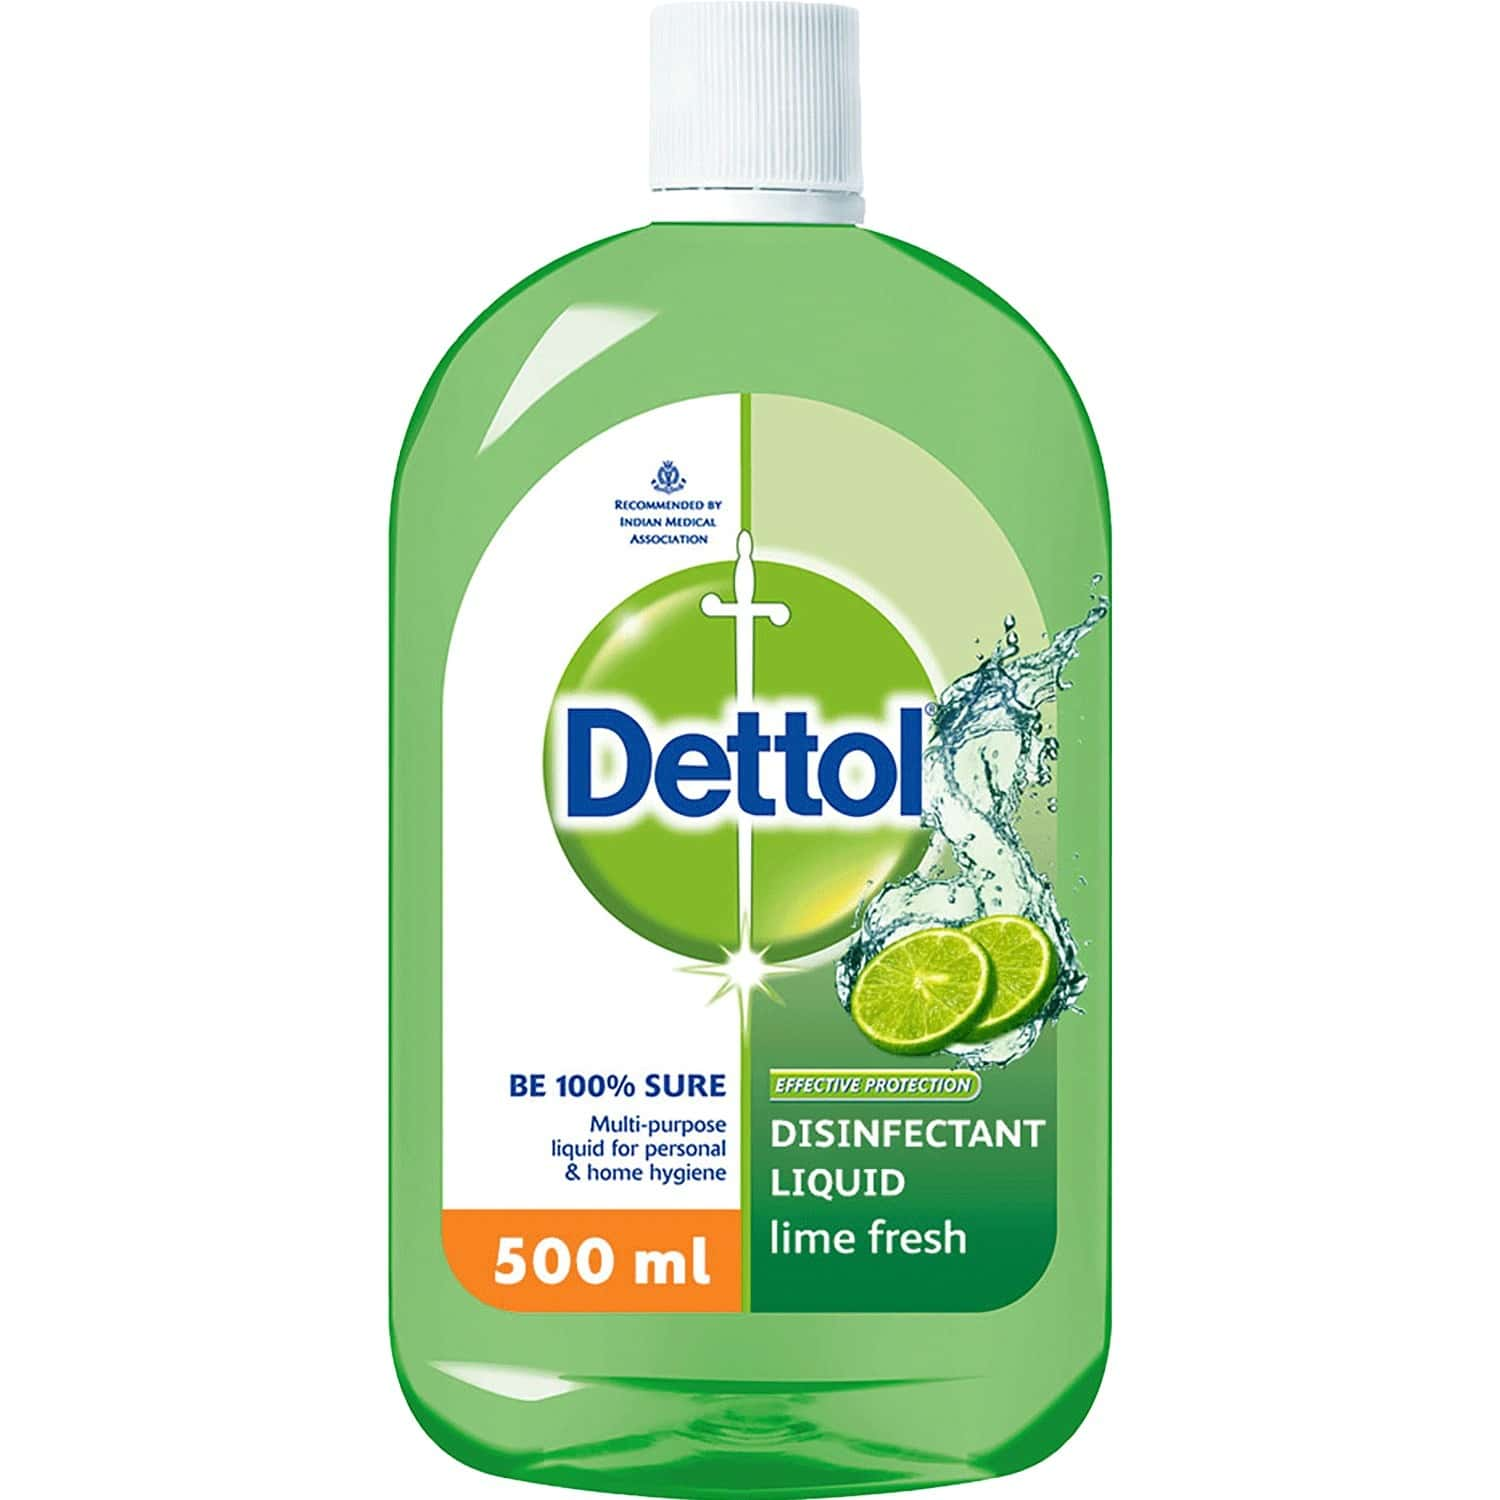 Dettol Liquid Disinfectant For Floor Cleaner, Surface Disinfection Personal Hygiene Lime Fresh 500ml